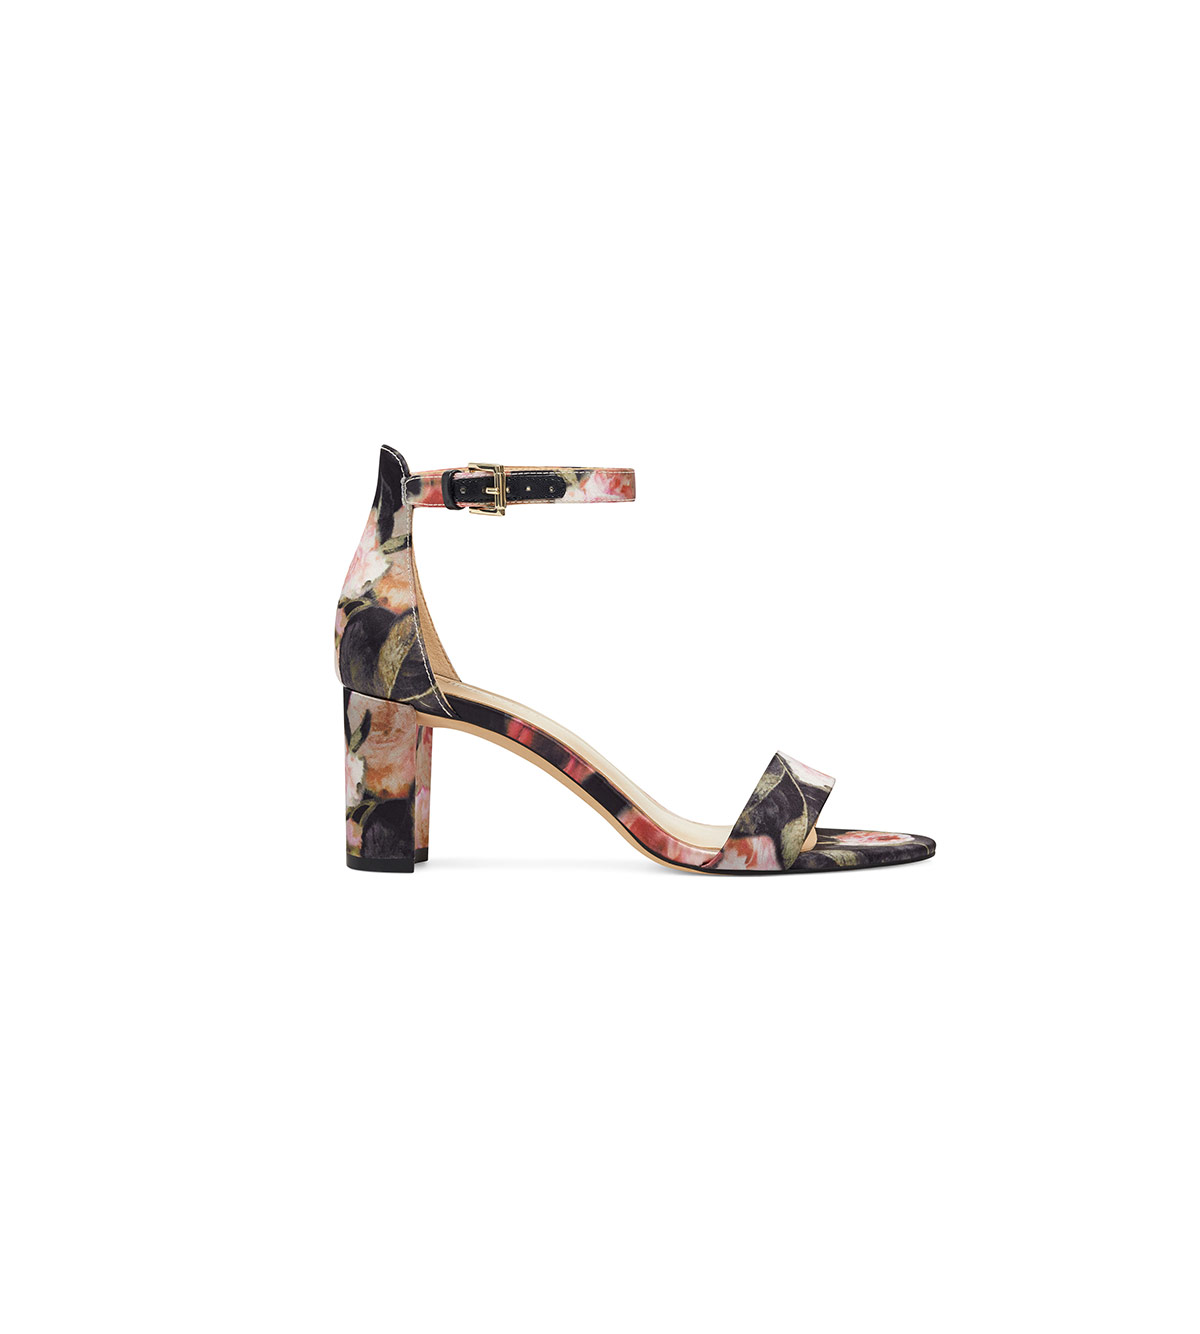 Pruce Open Toed Sandals